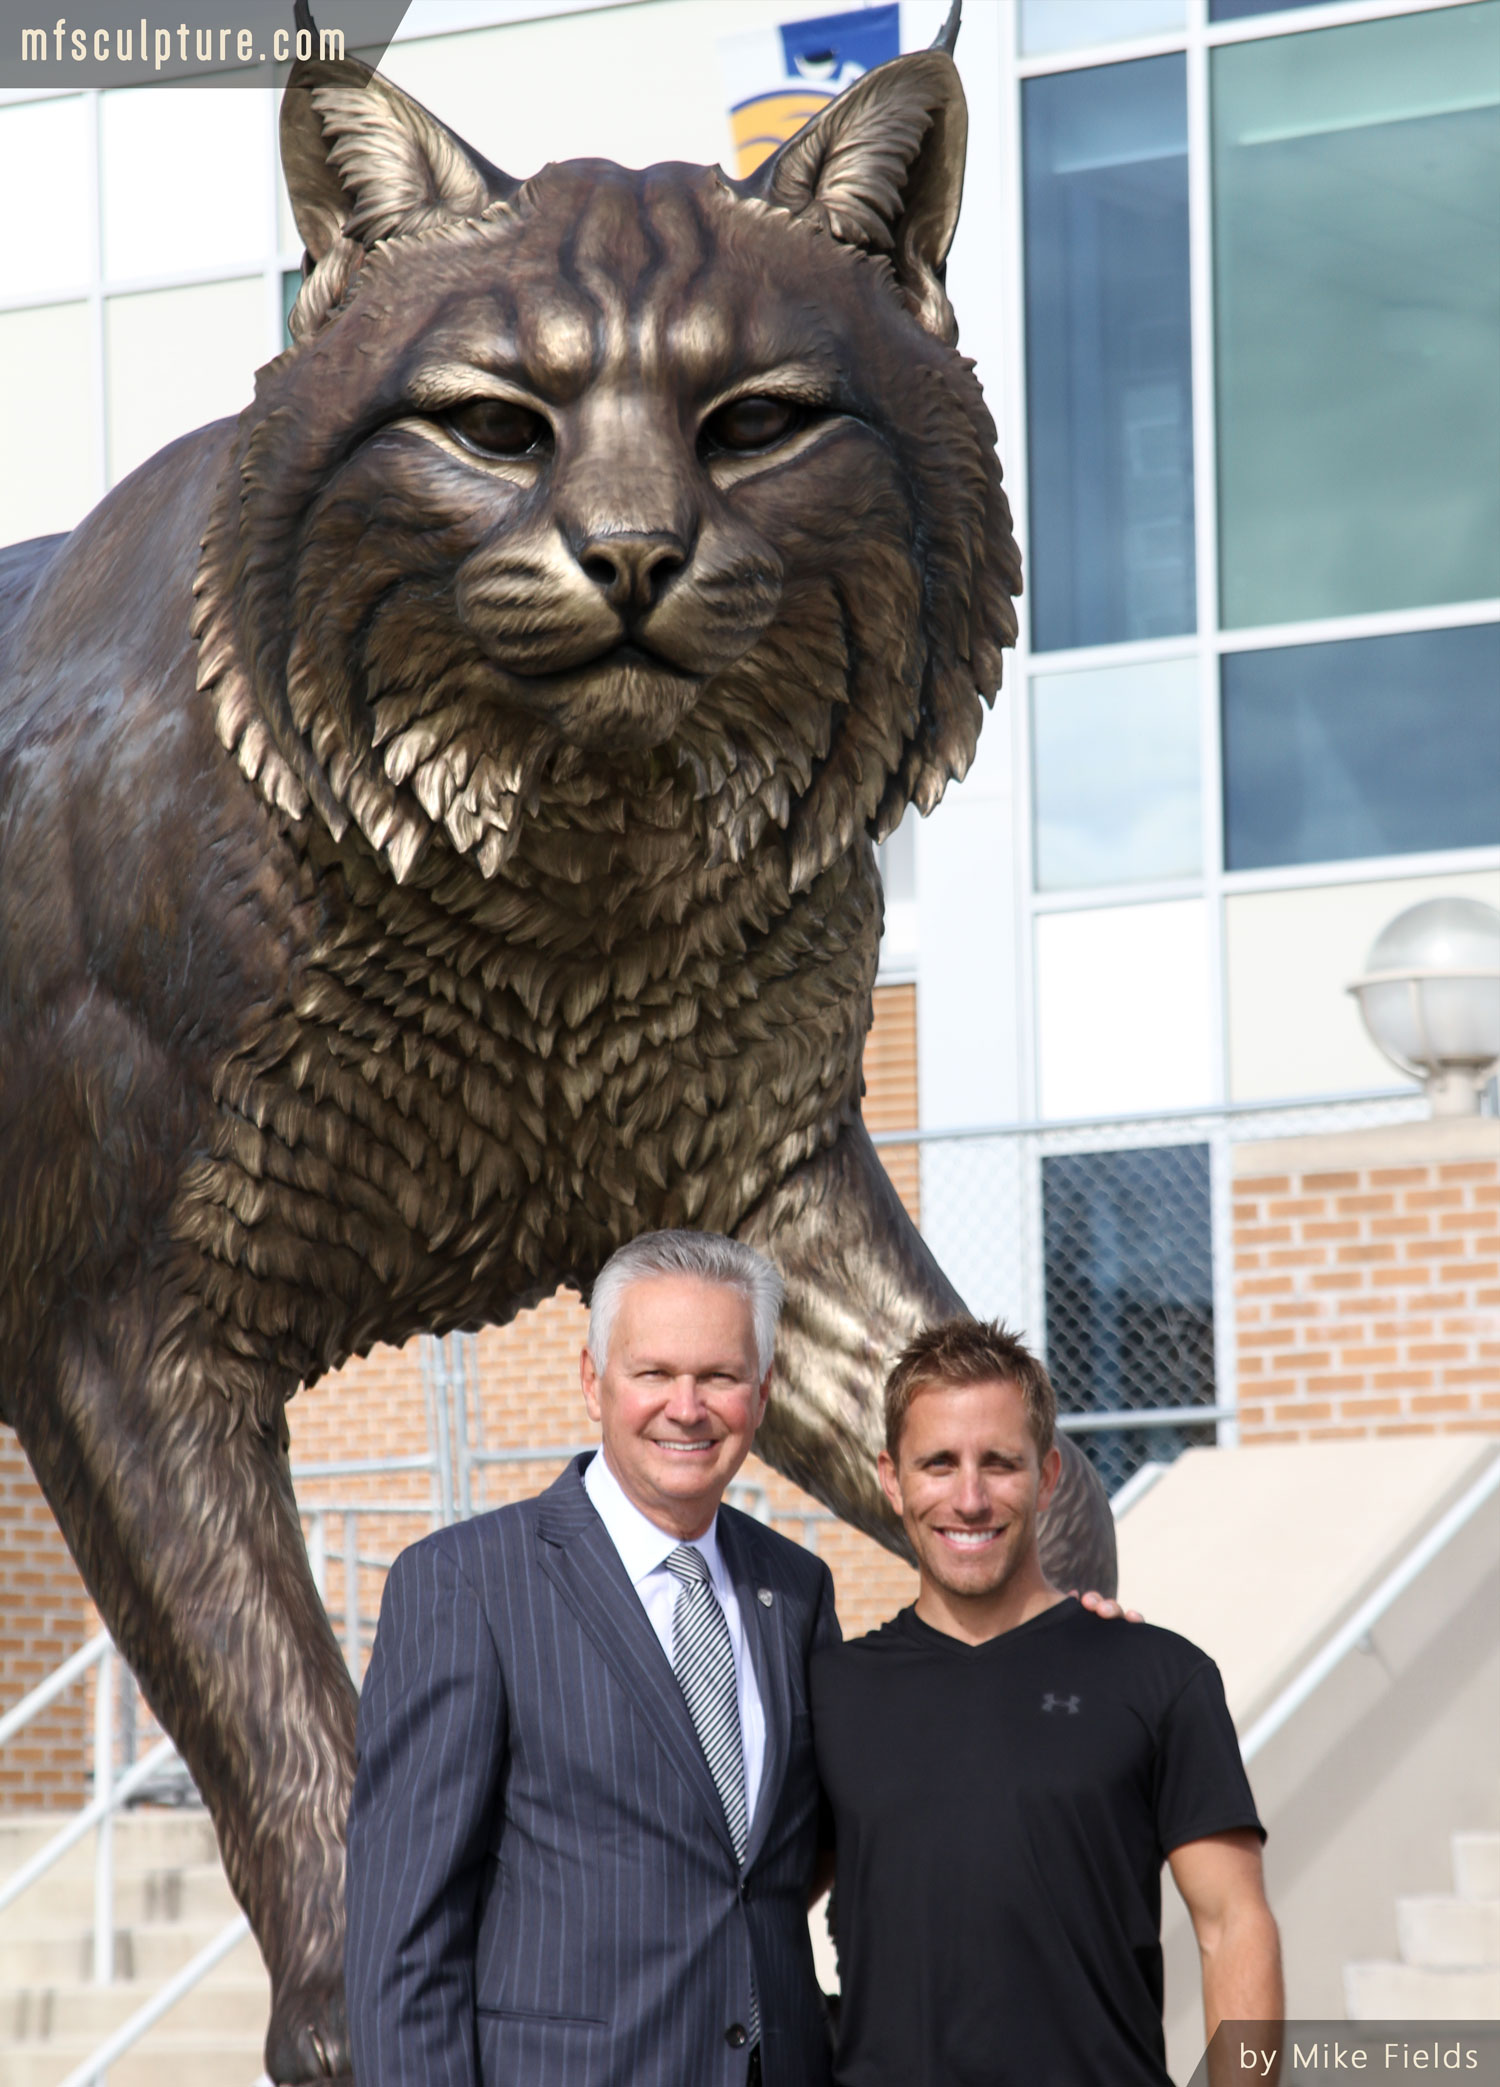 University-Wildcat-Sculpture-Bronze-Mascot-Bobcat-Monument